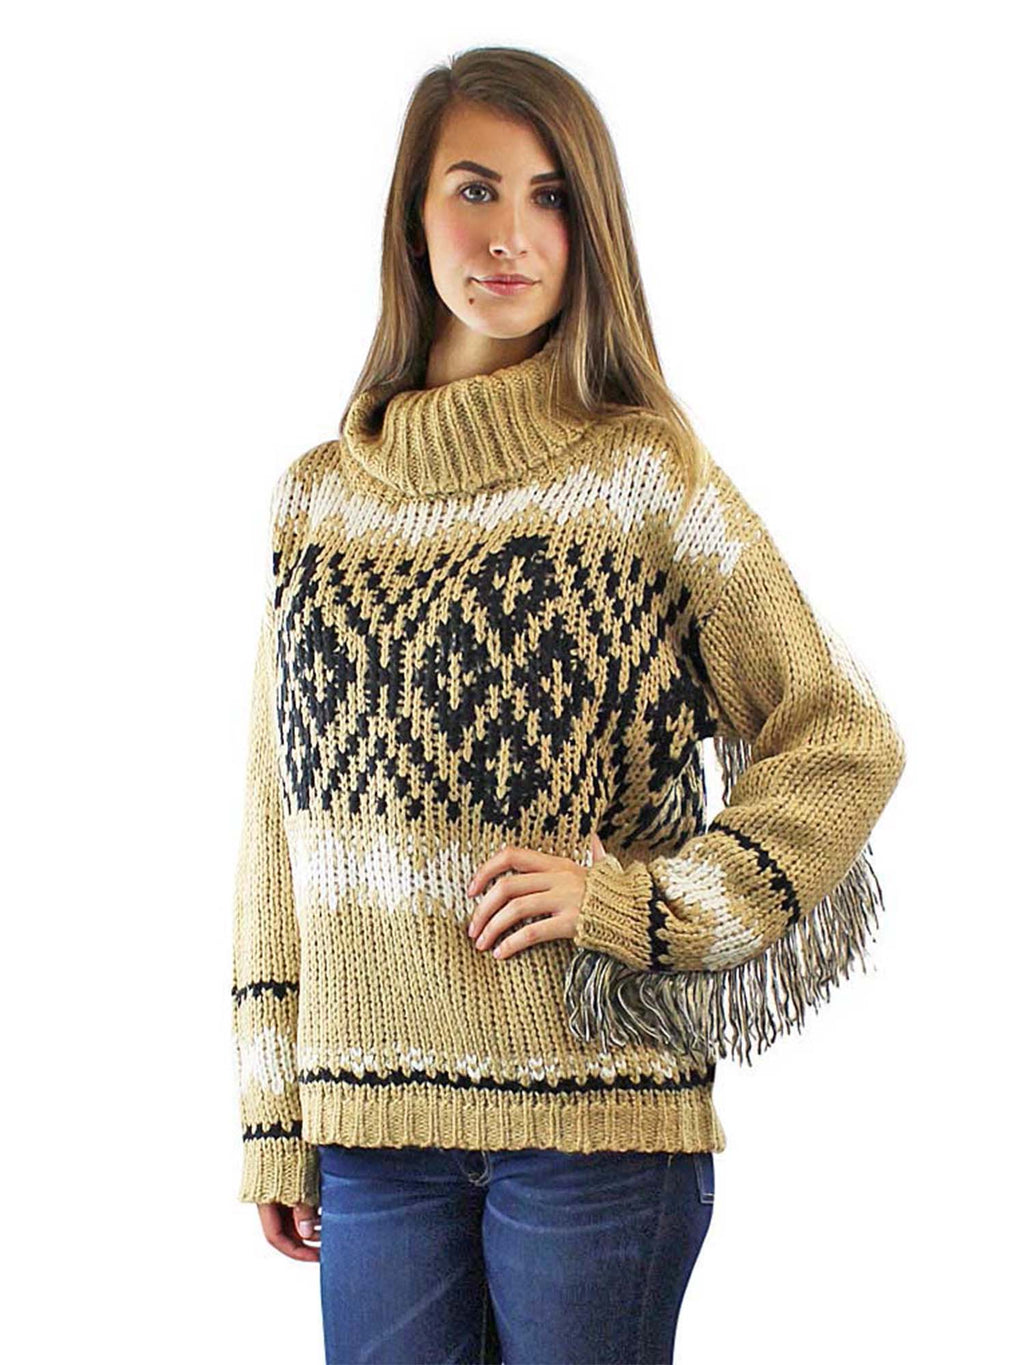 Tan Knit Turtleneck Sweater With Fringed Sleeves